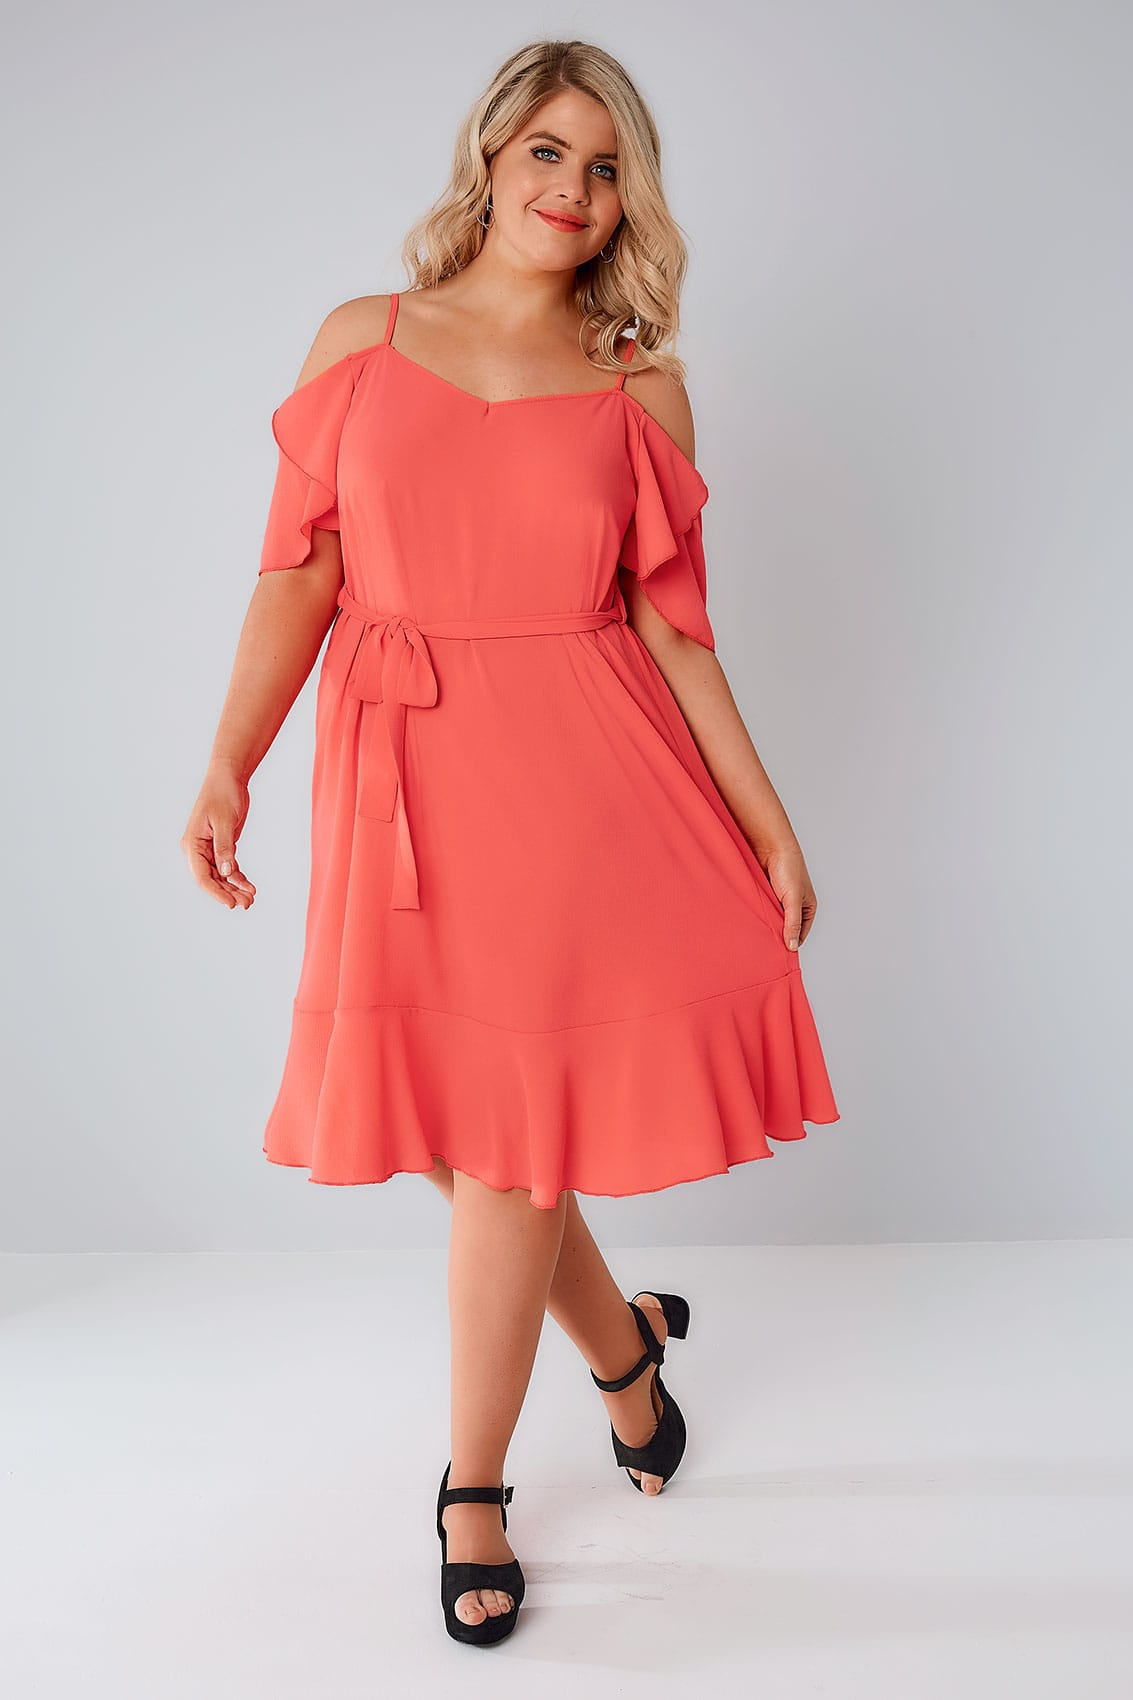 21st Birthday Dresses For Plus Size